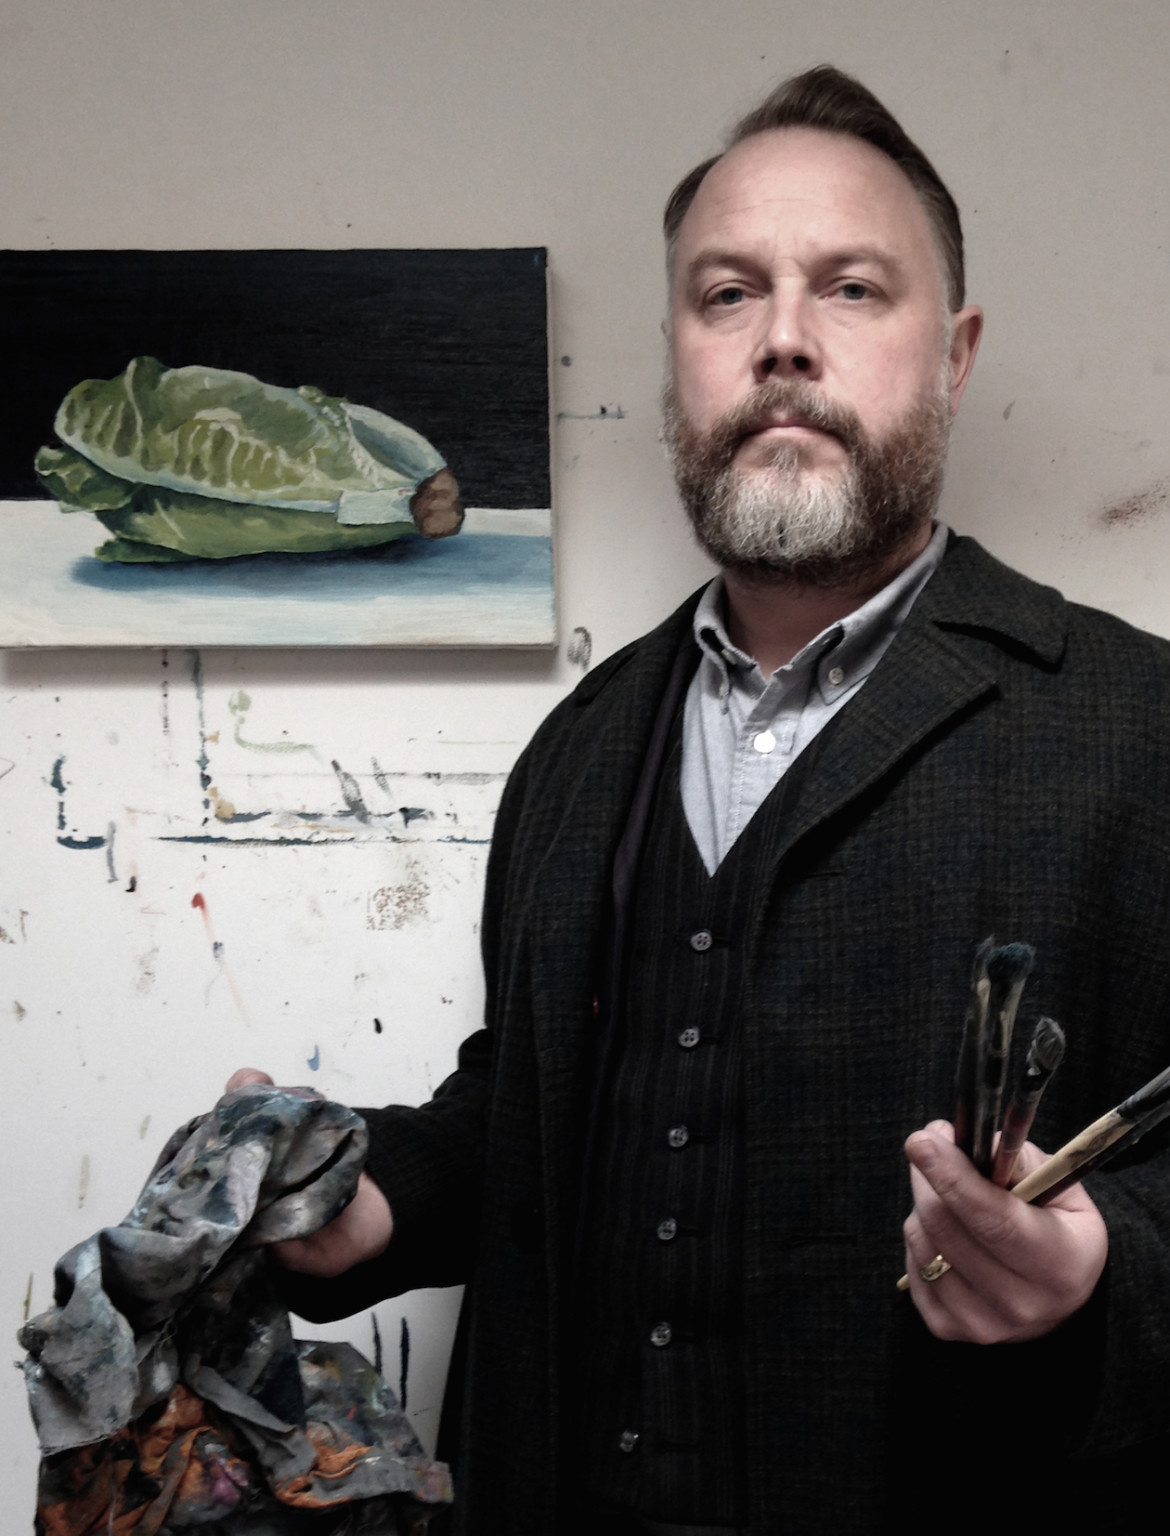 Henry Ward, artist and head of education at the Freelands Foundation